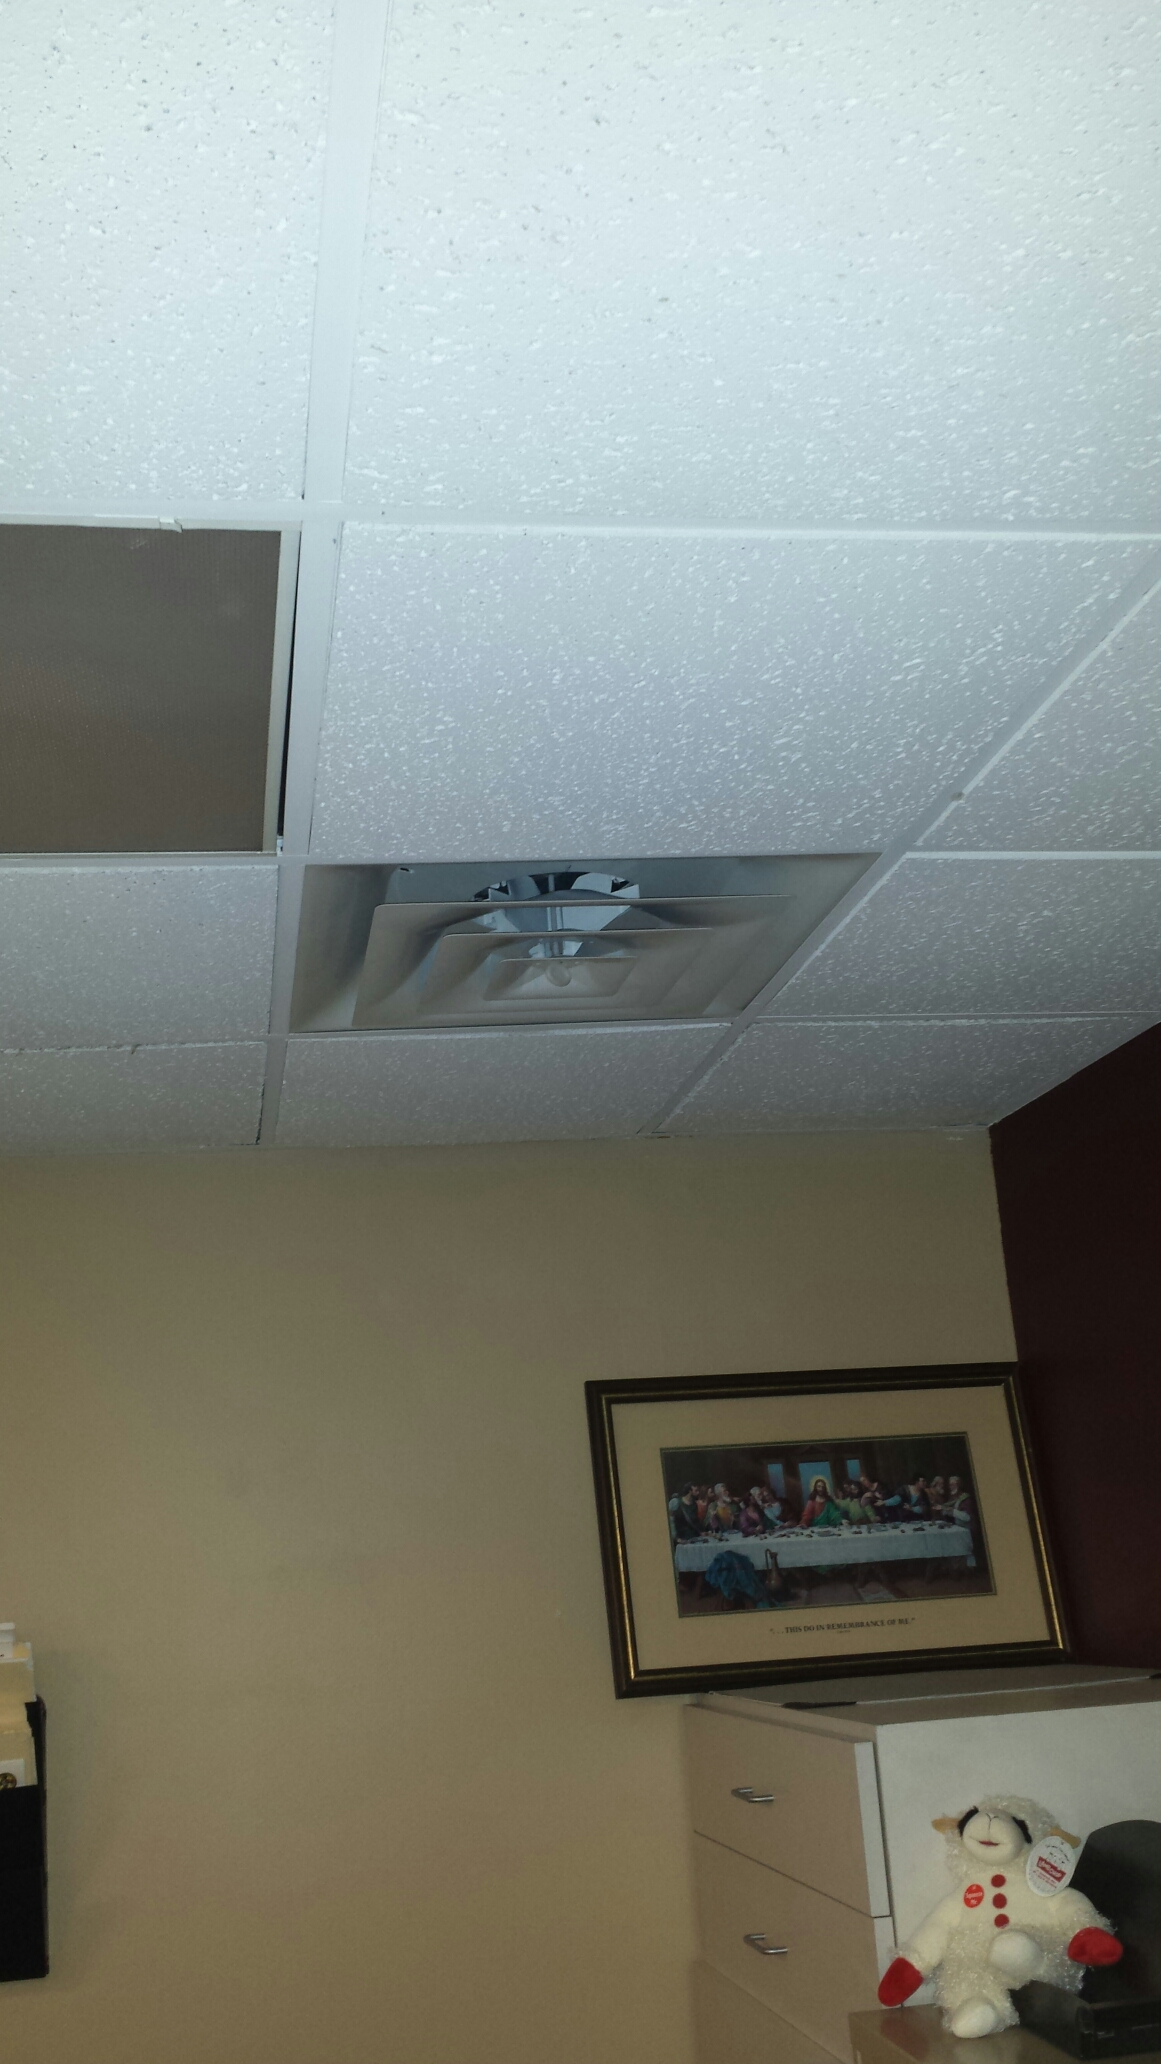 New Hope, MN - Ductwork install. Installed two air diffusers to aid in air flow issues.